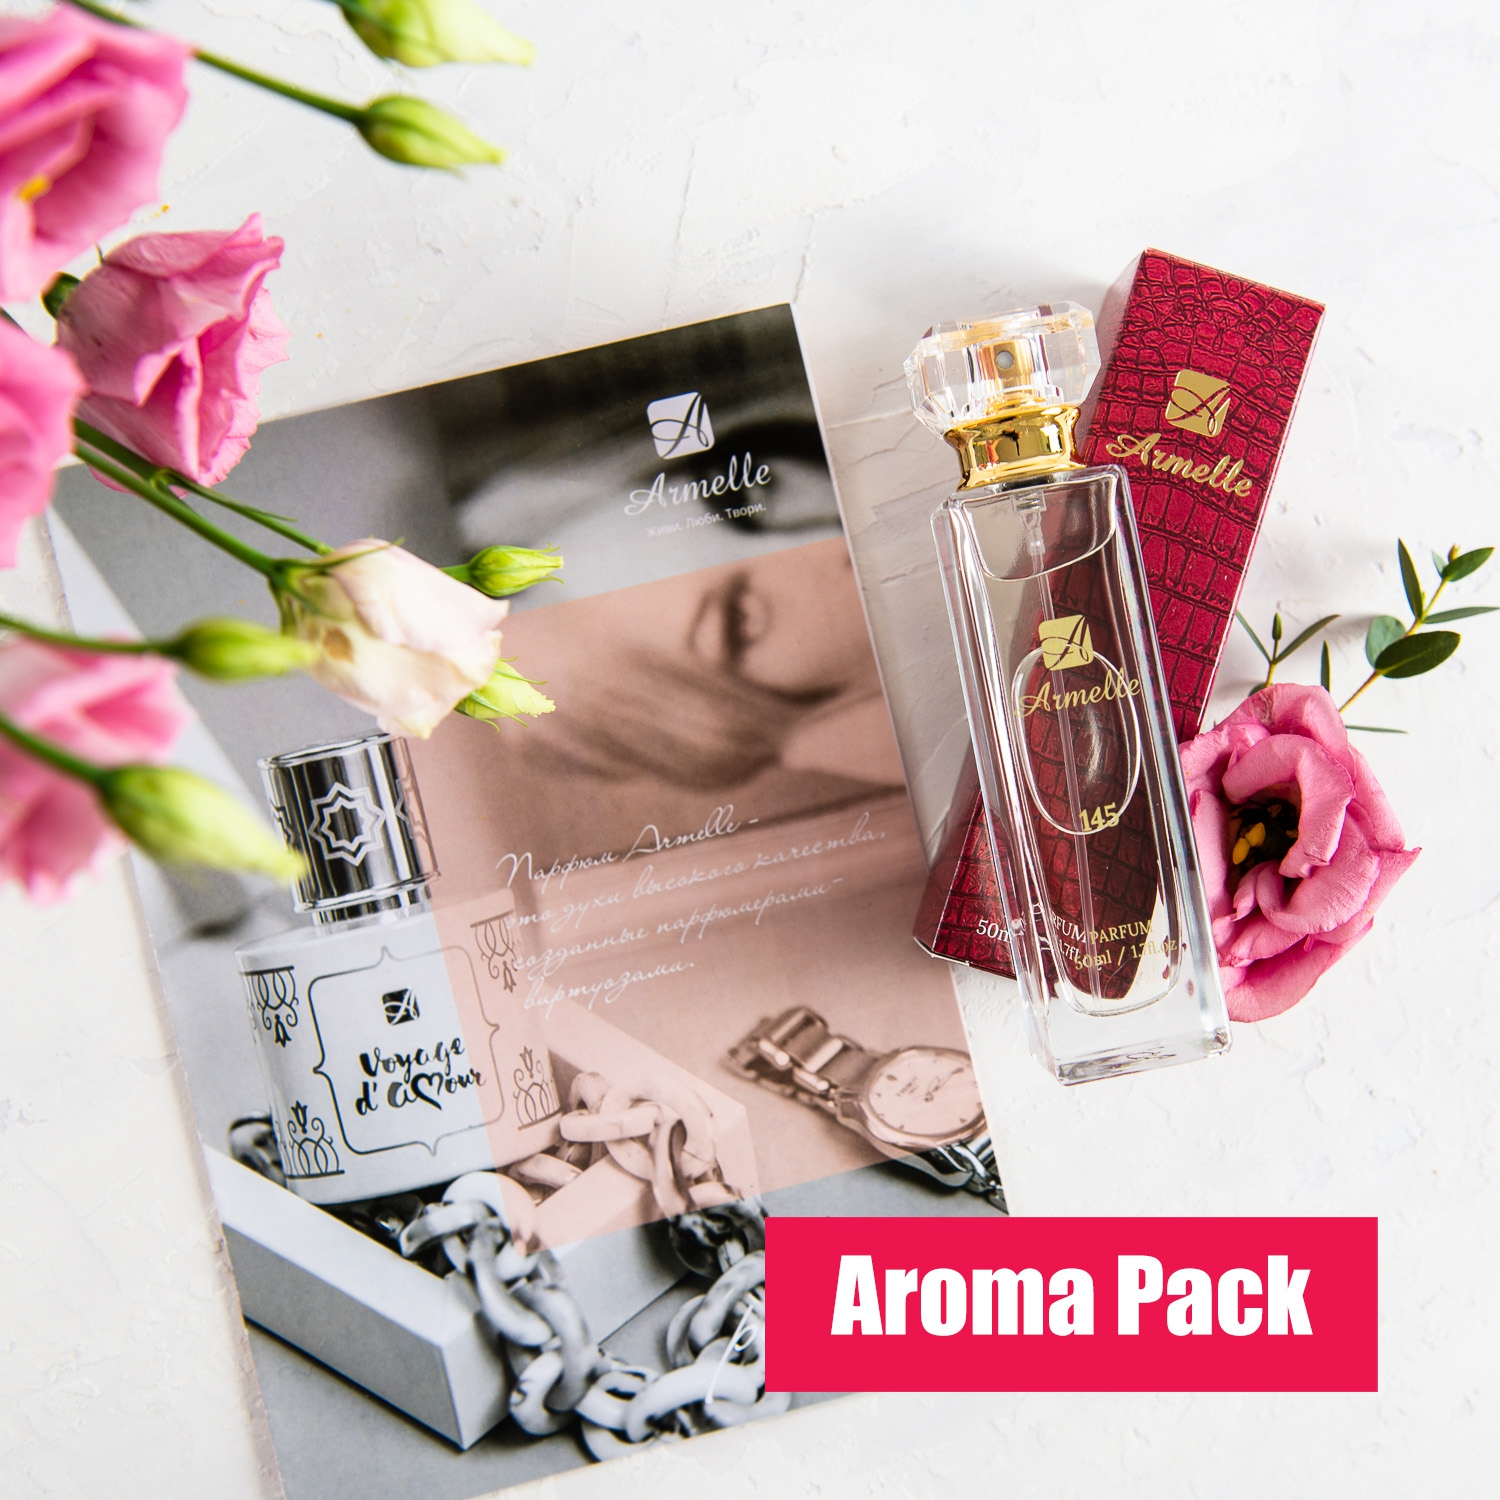 AROMA PACK CLASSIC И AROMA PACK ADORE